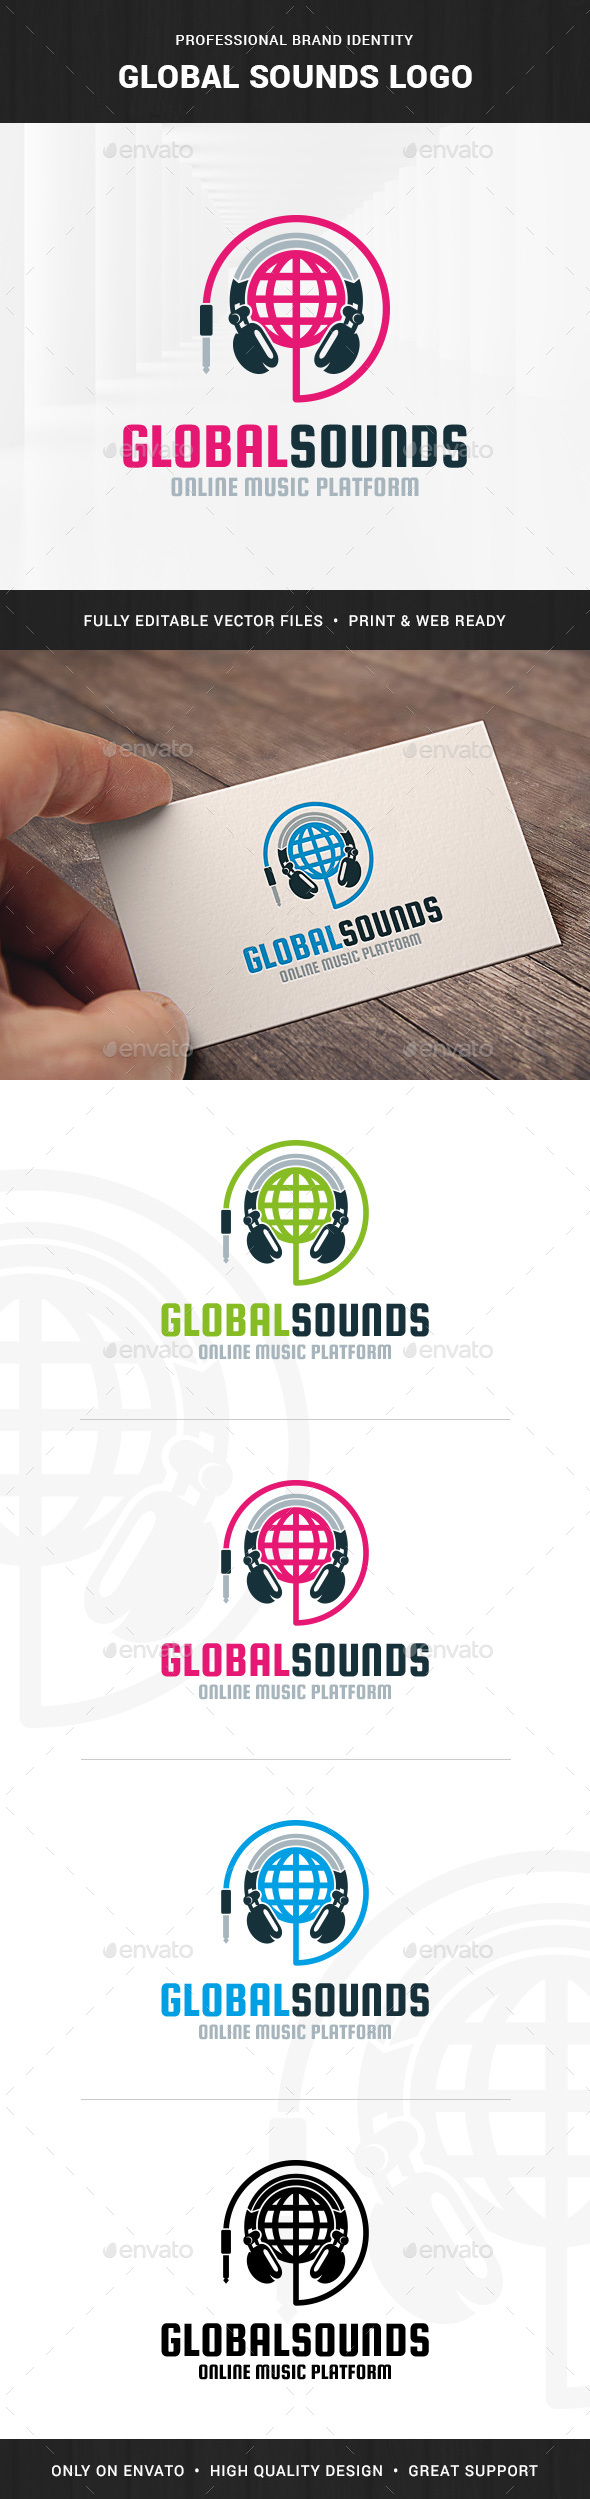 Global Sounds Logo Template - Objects Logo Templates